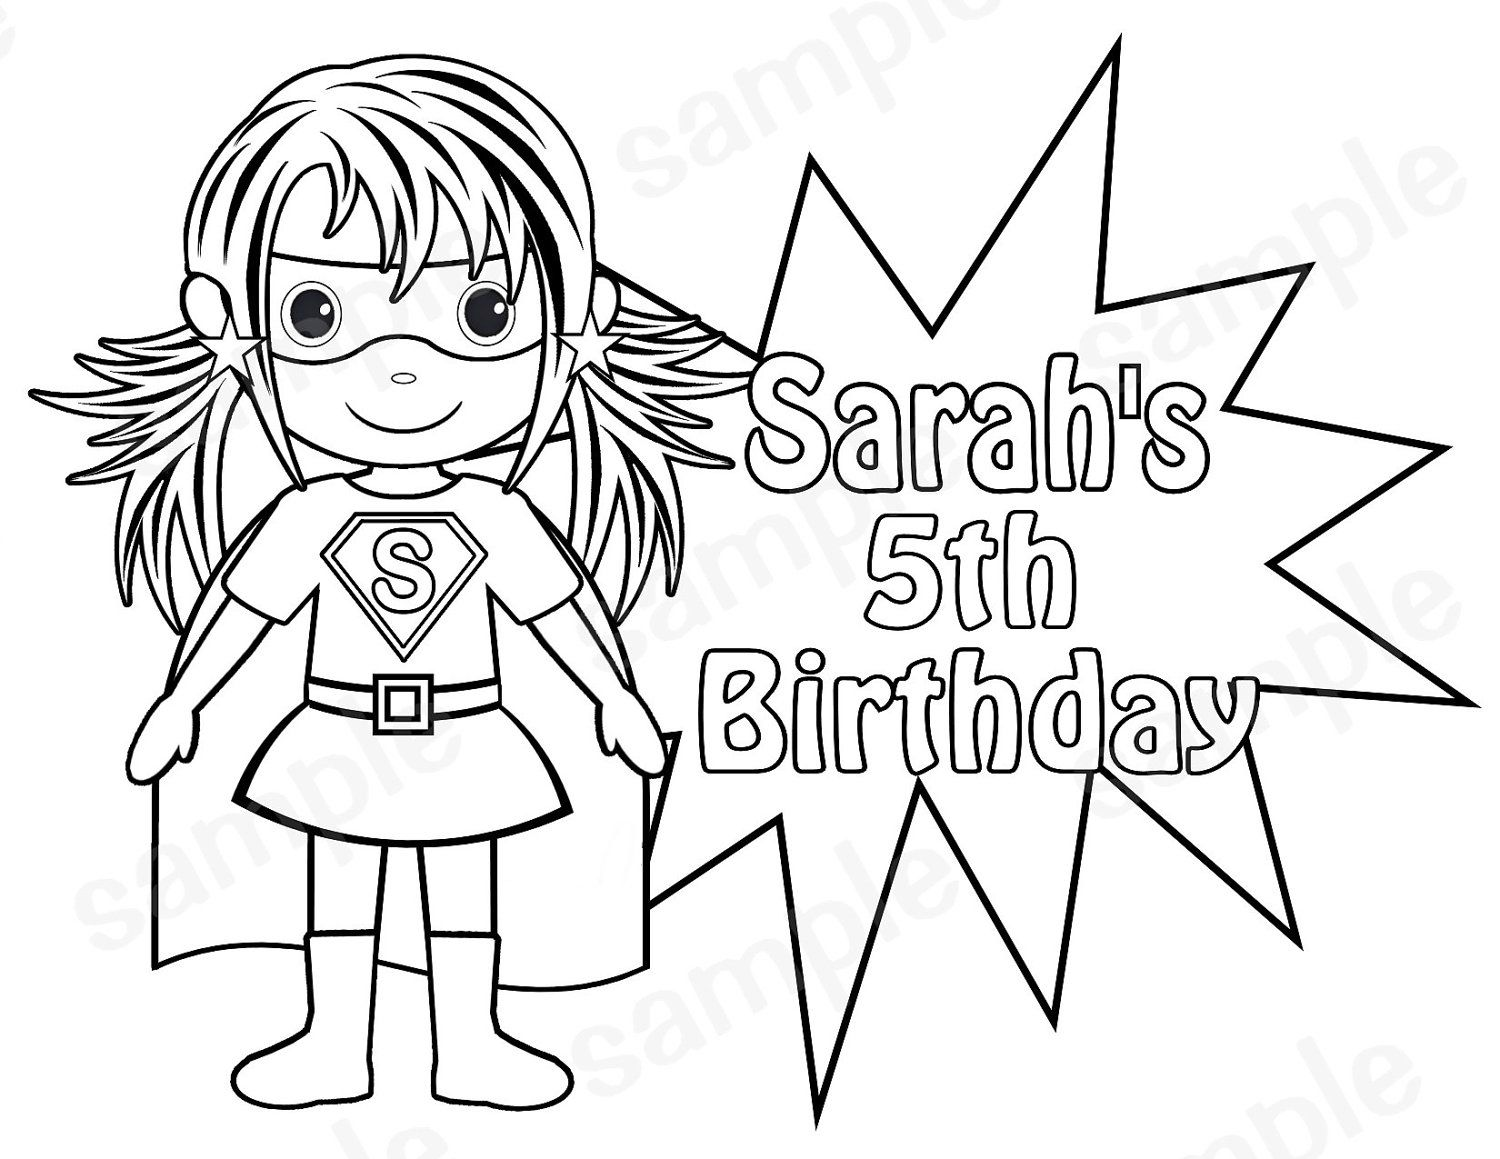 personalized printable superhero super hero birthday party